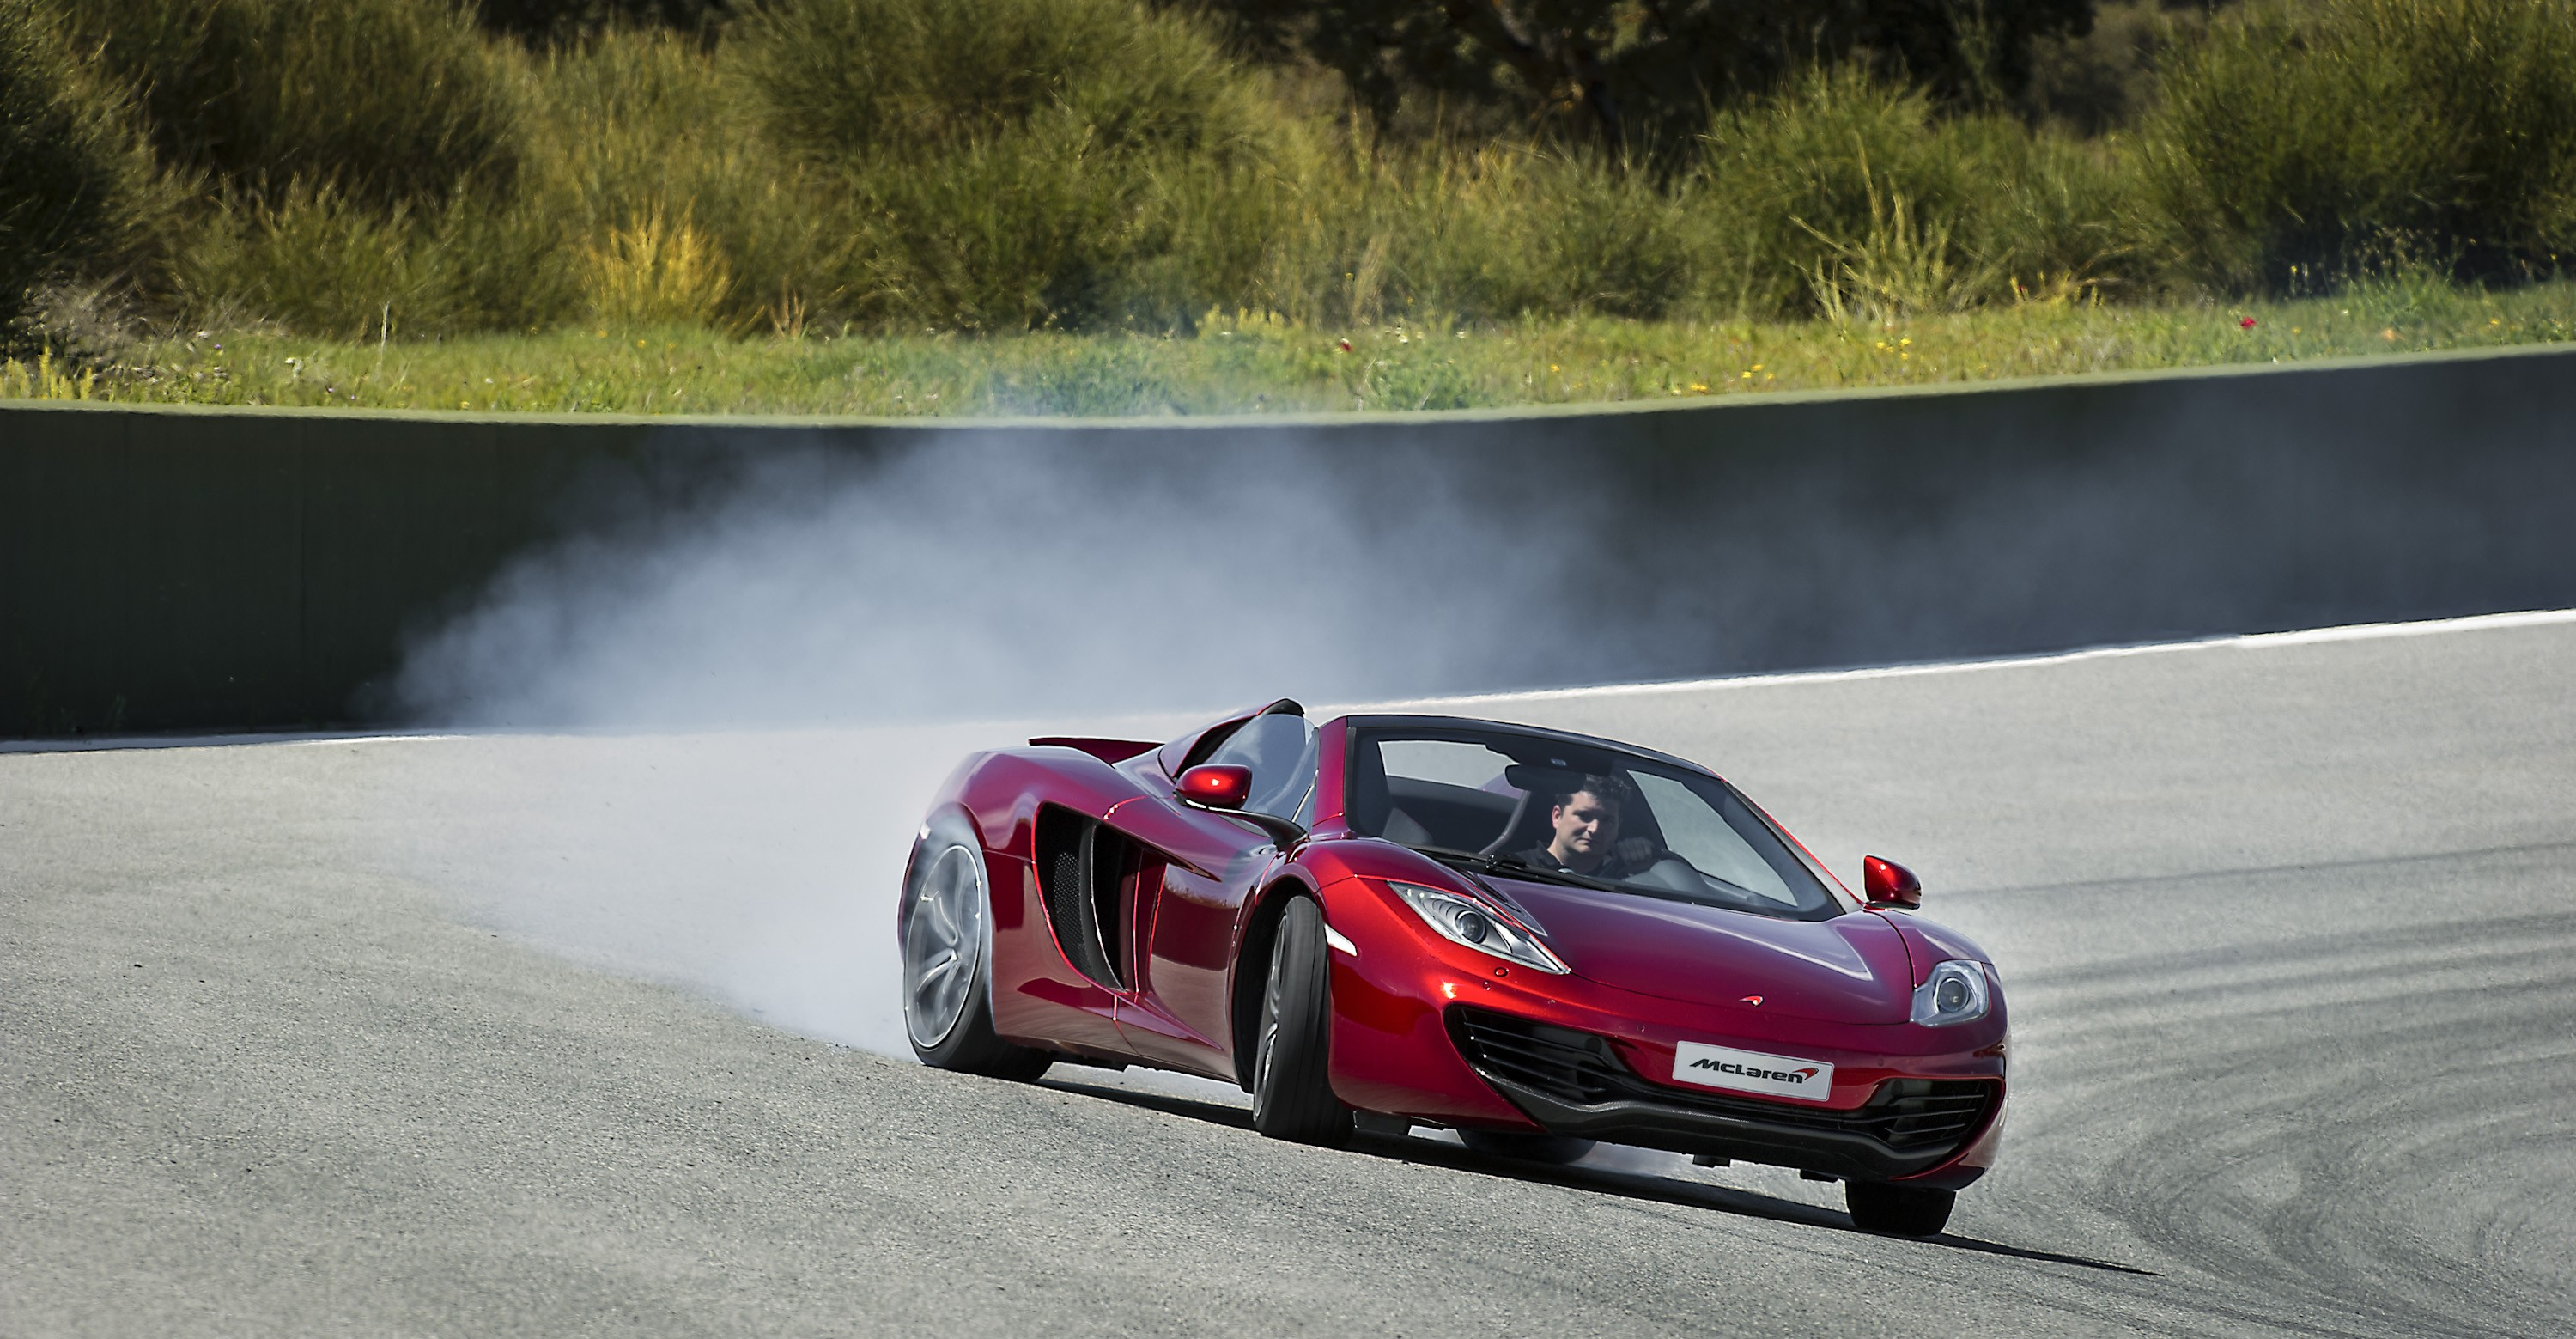 McLaren MP4-12C Spider Drifting